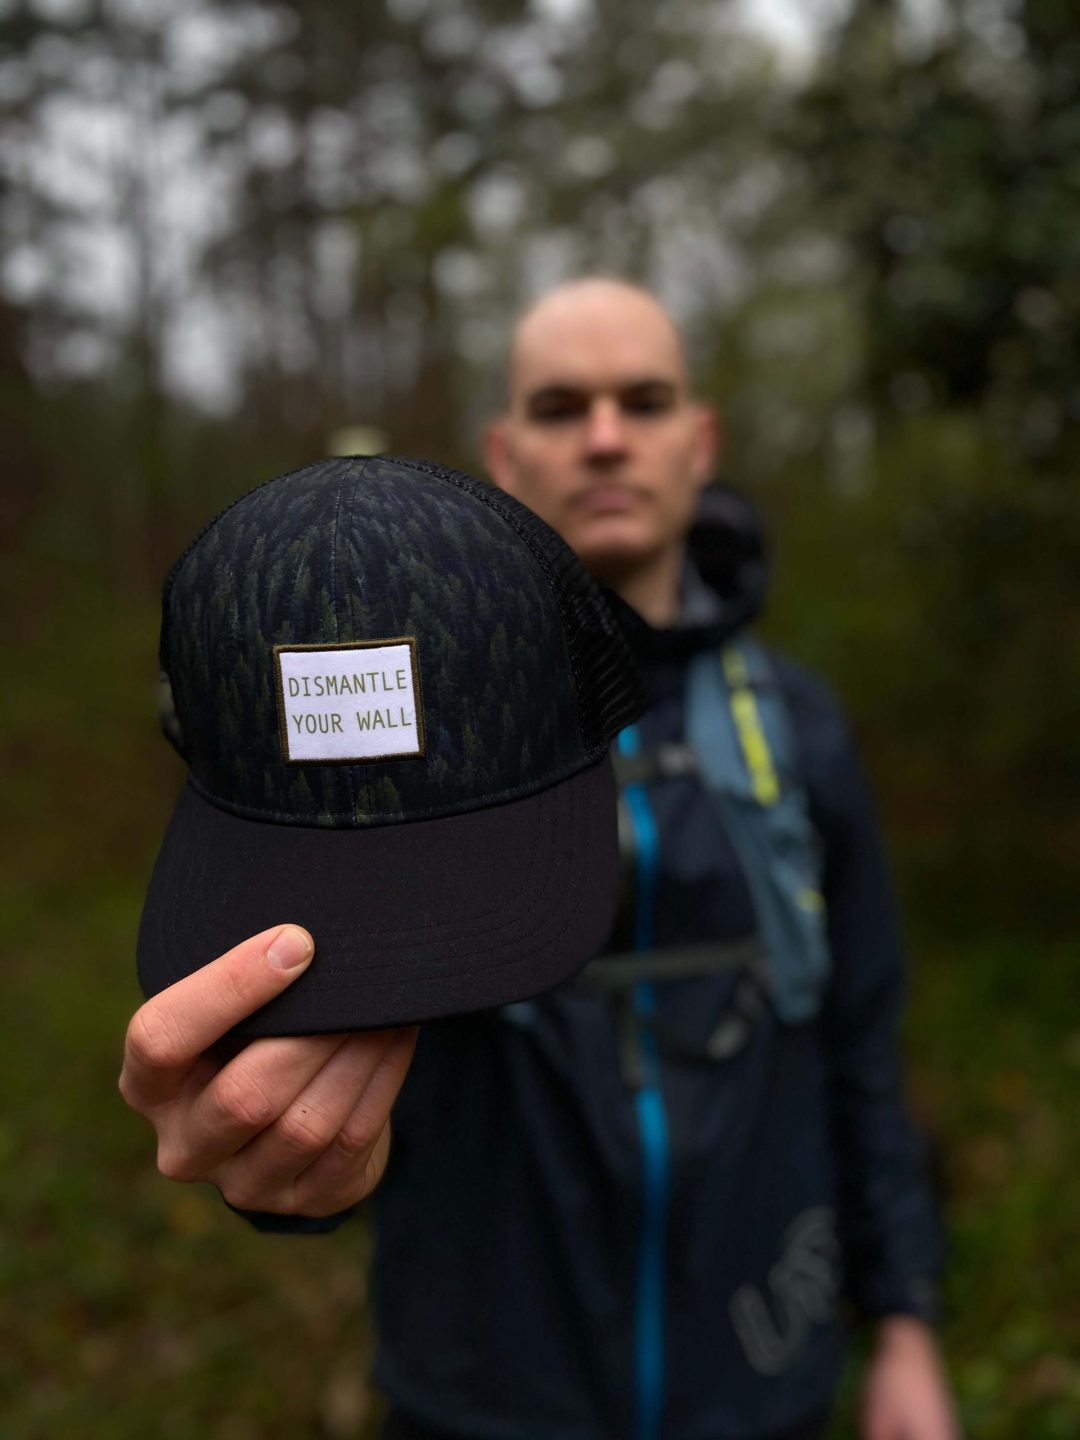 'Dismantle Your Wall' trail / ultra running performance trucker hat